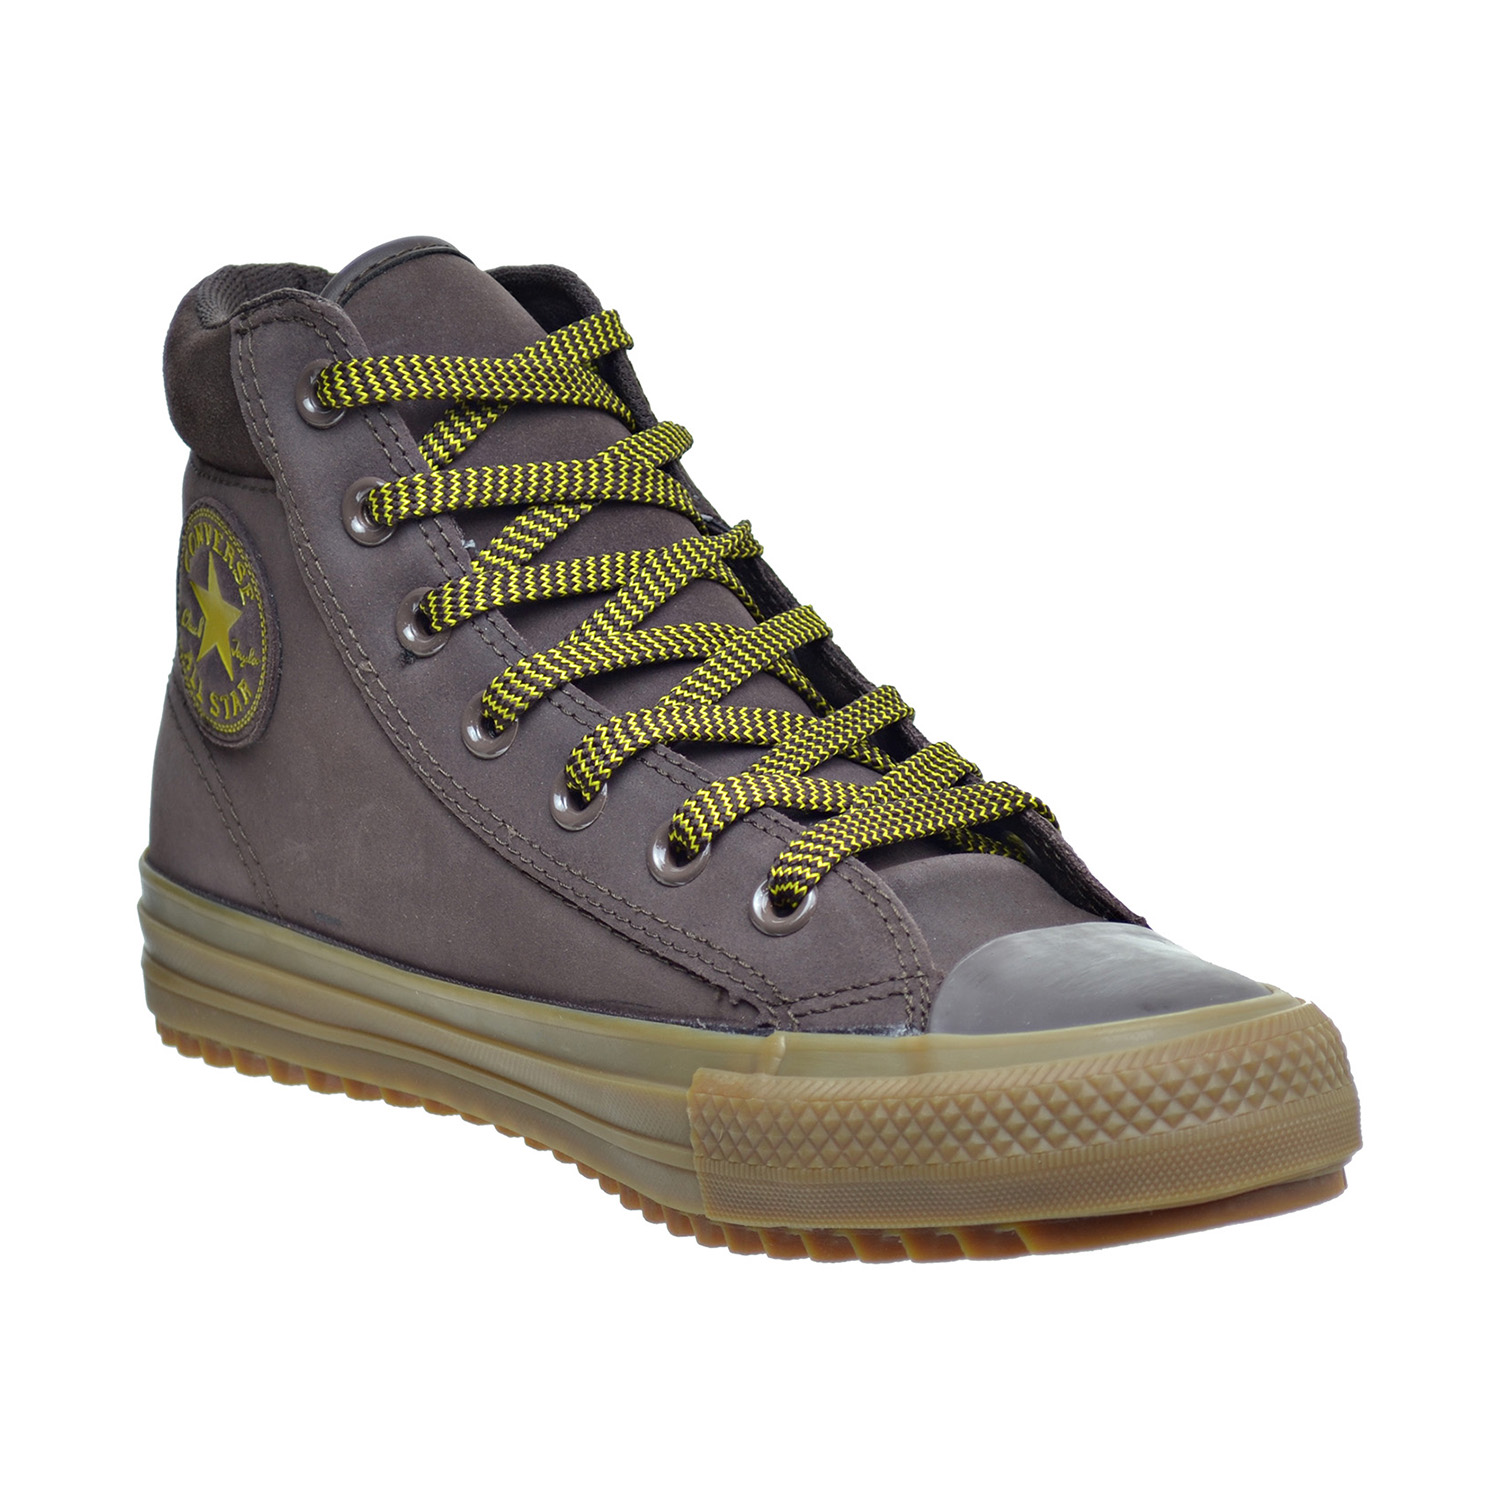 5c92b647b869 Details about Converse Chuck Taylor All Star PC High Top Men s Boots Burnt  Umber Lemon 153674C